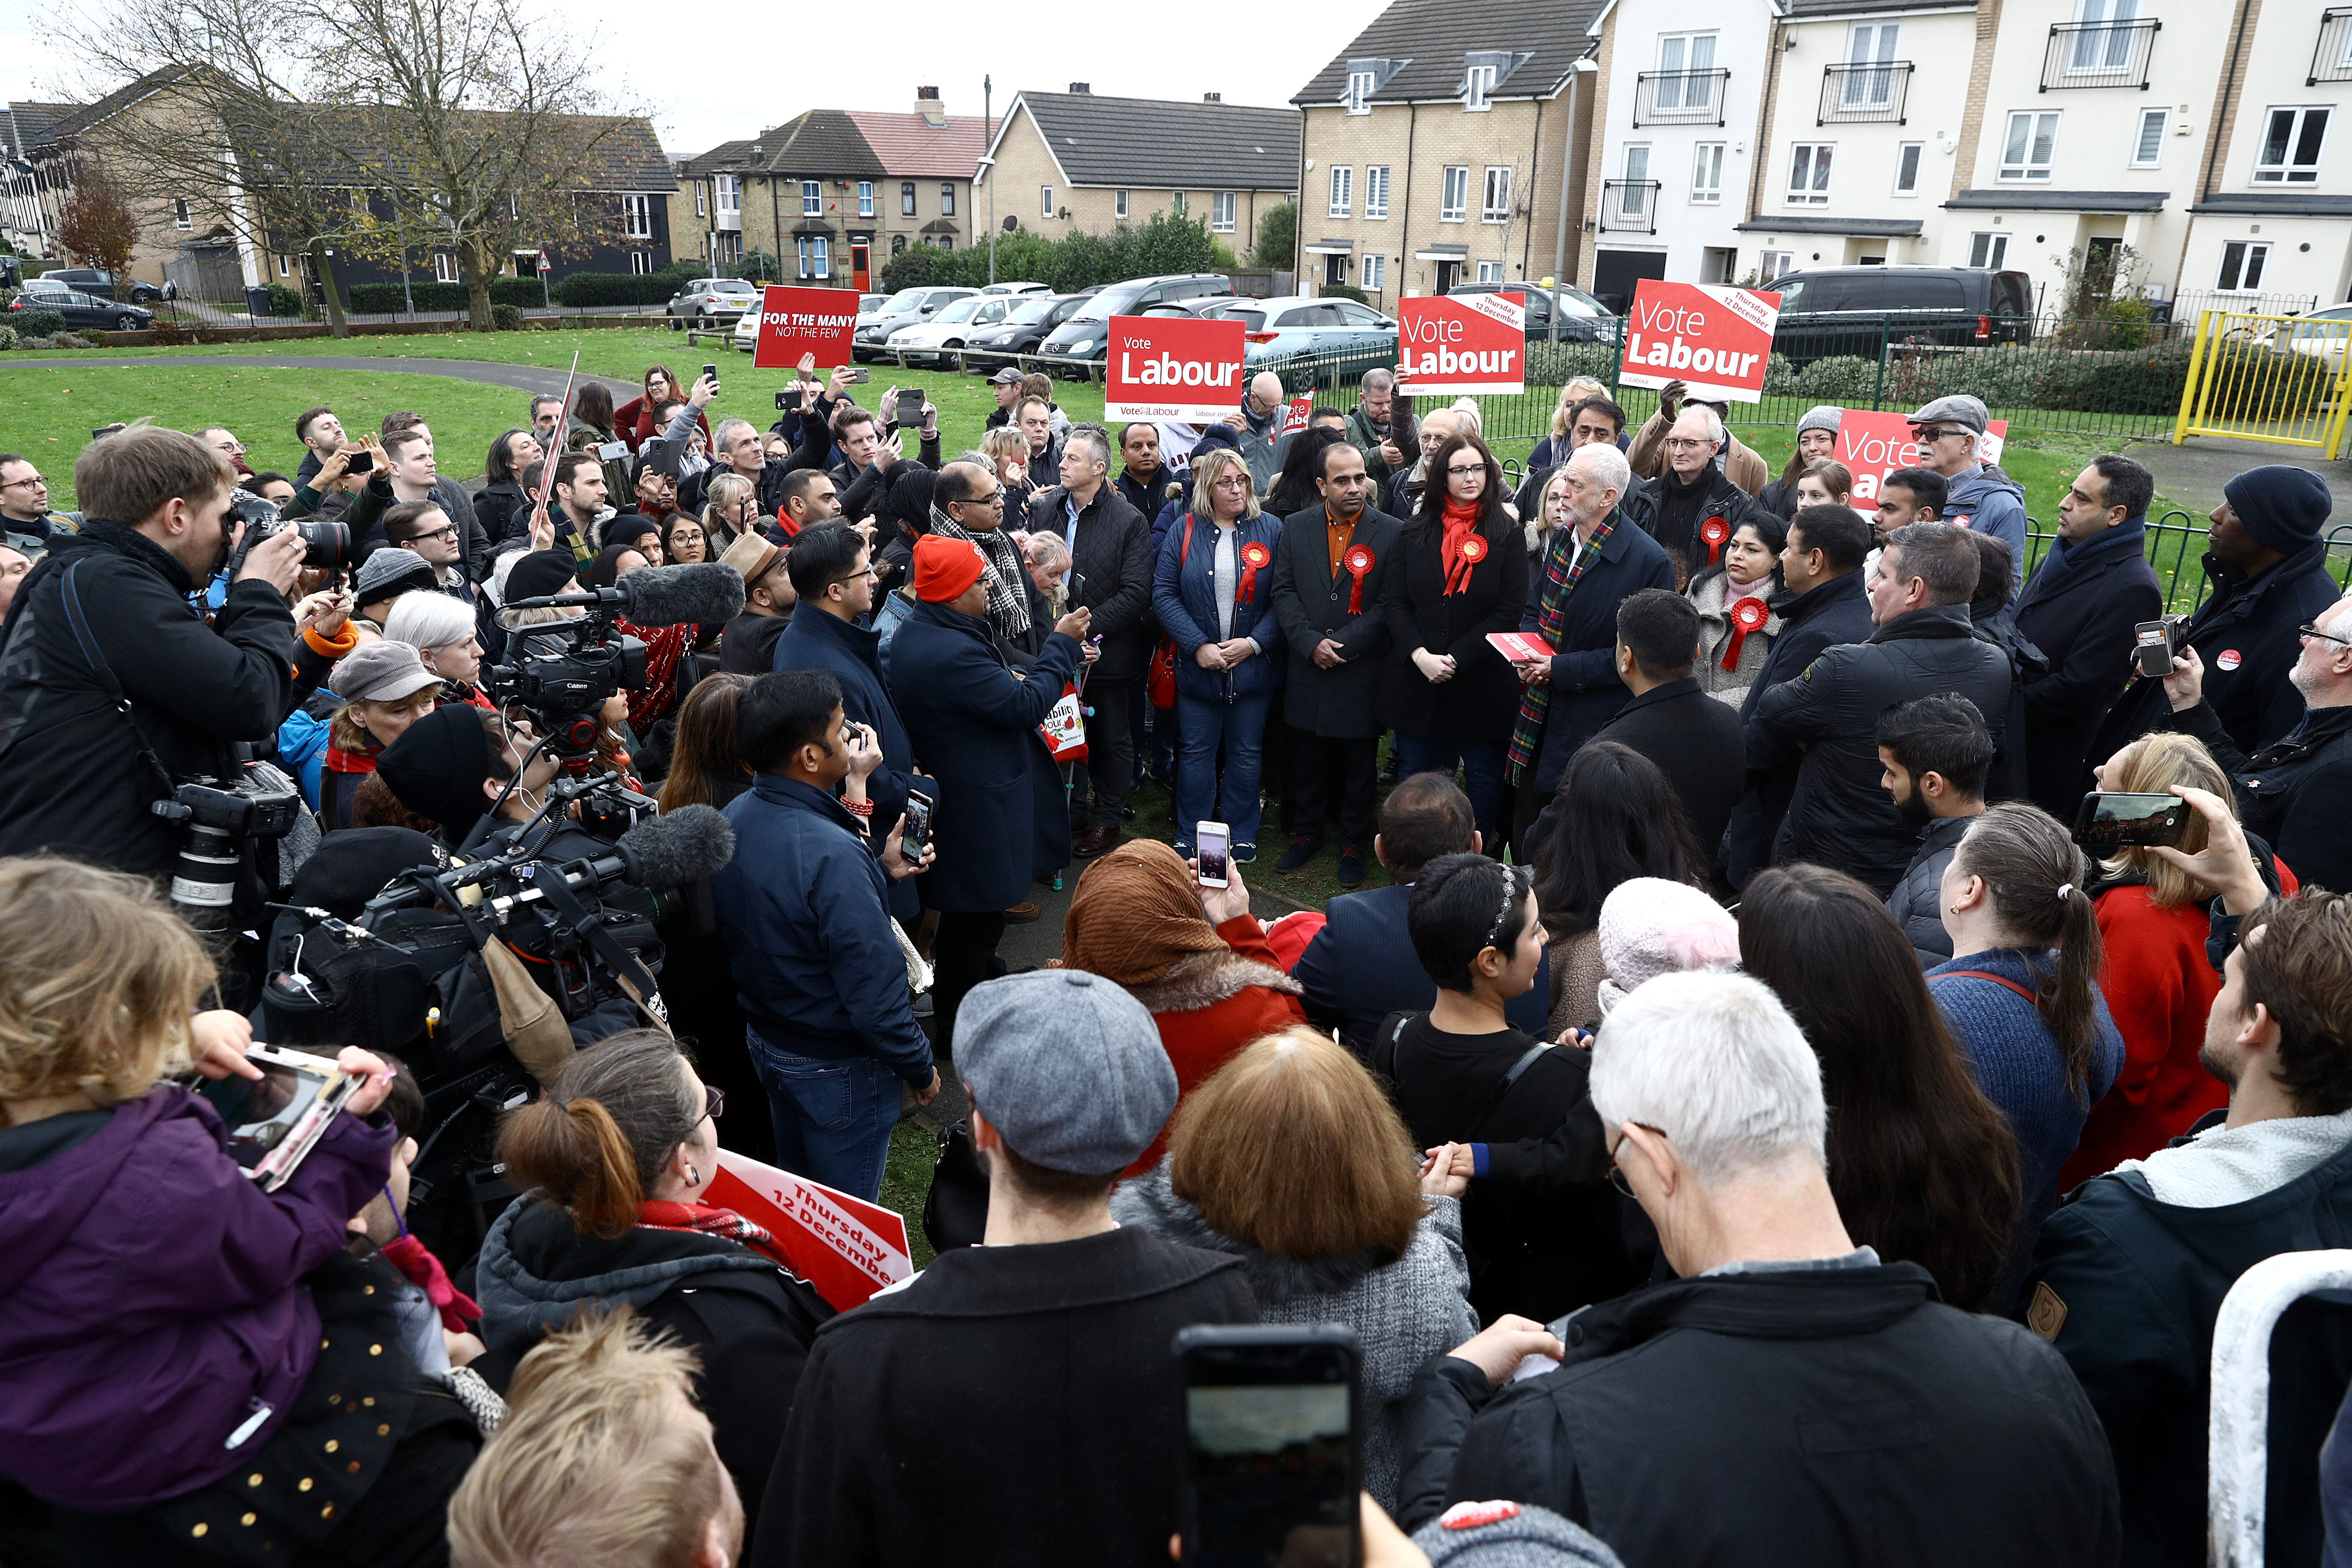 Labour Party leader Jeremy Corbyn, holds his party's manifesto as he speaks to supporters during a visit to Thurrock in Essex whilst on the General Election campaign trail.